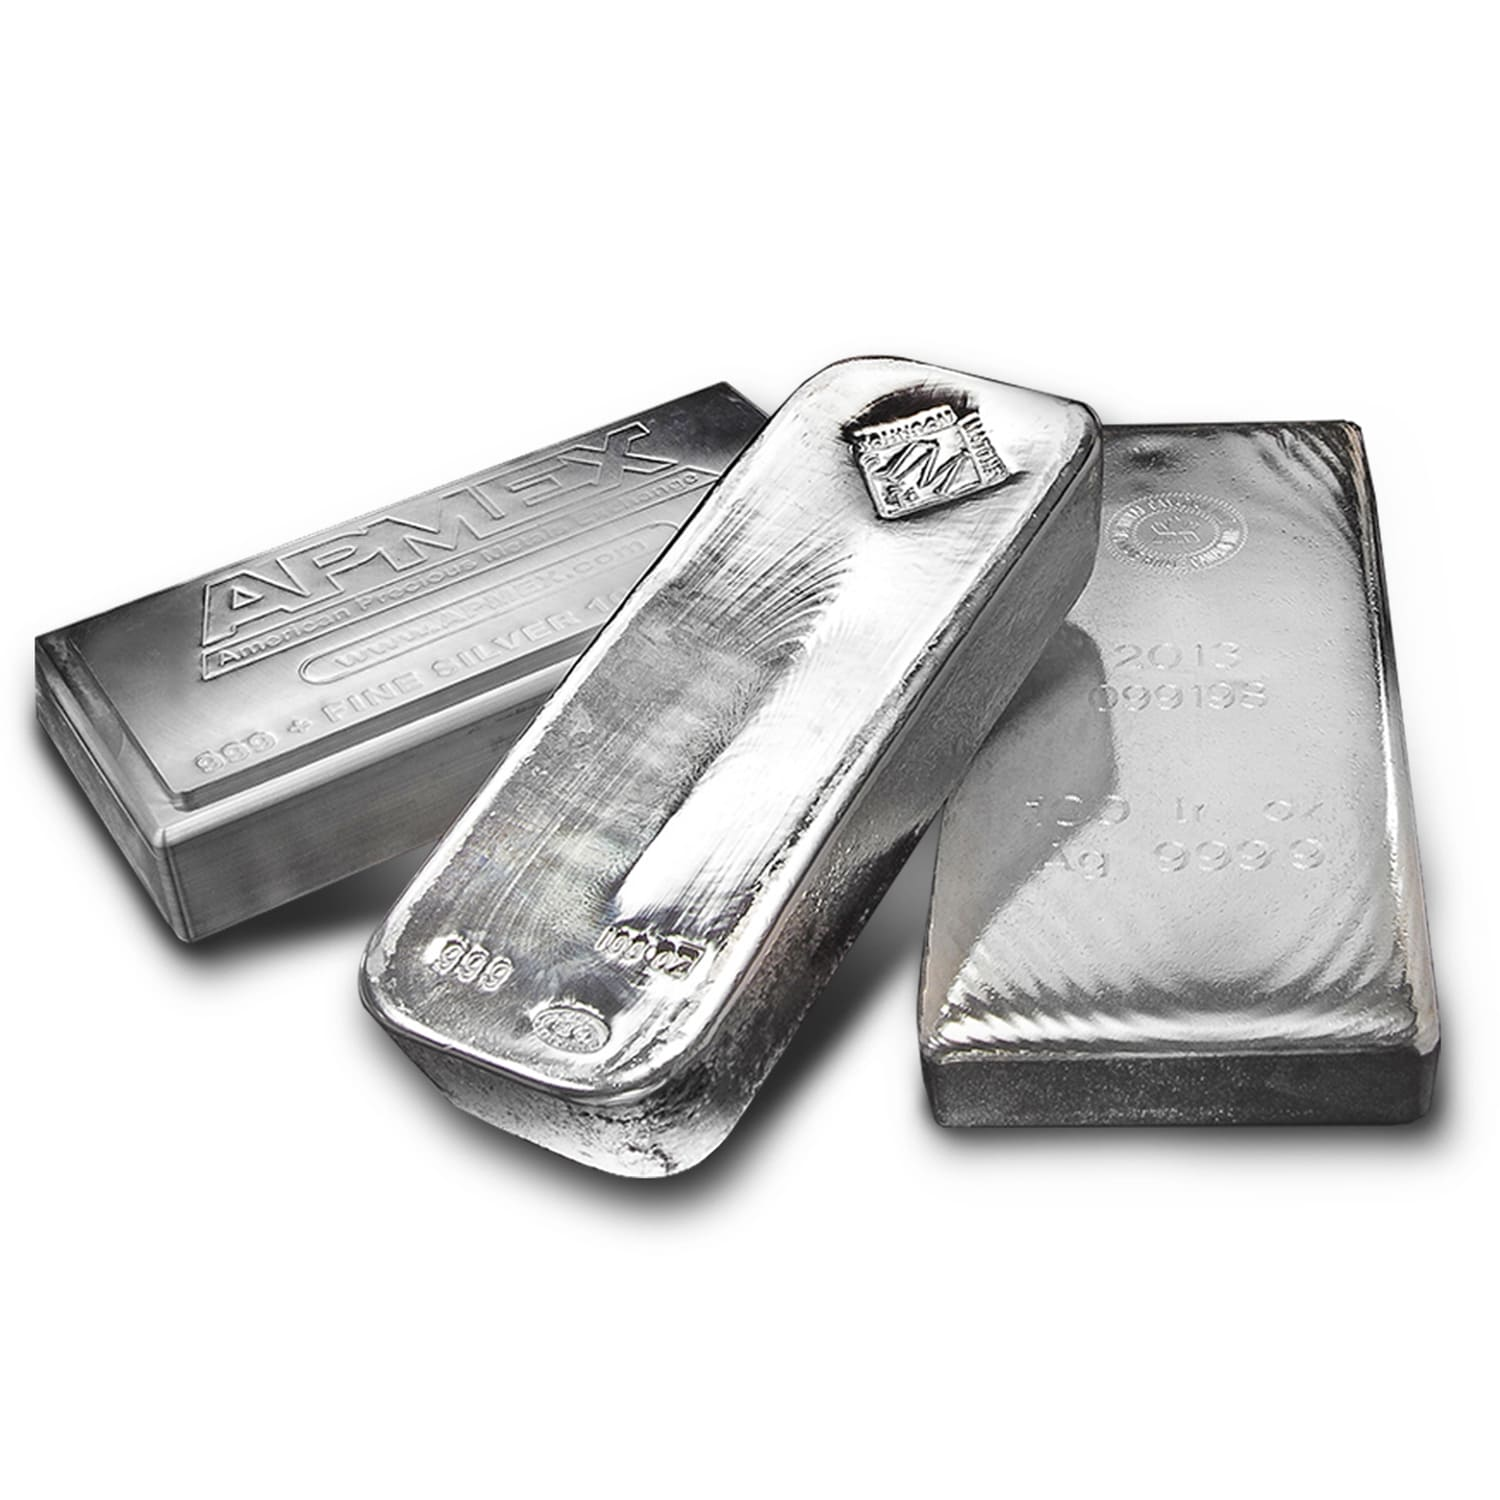 100 oz Silver Bar - Secondary Market